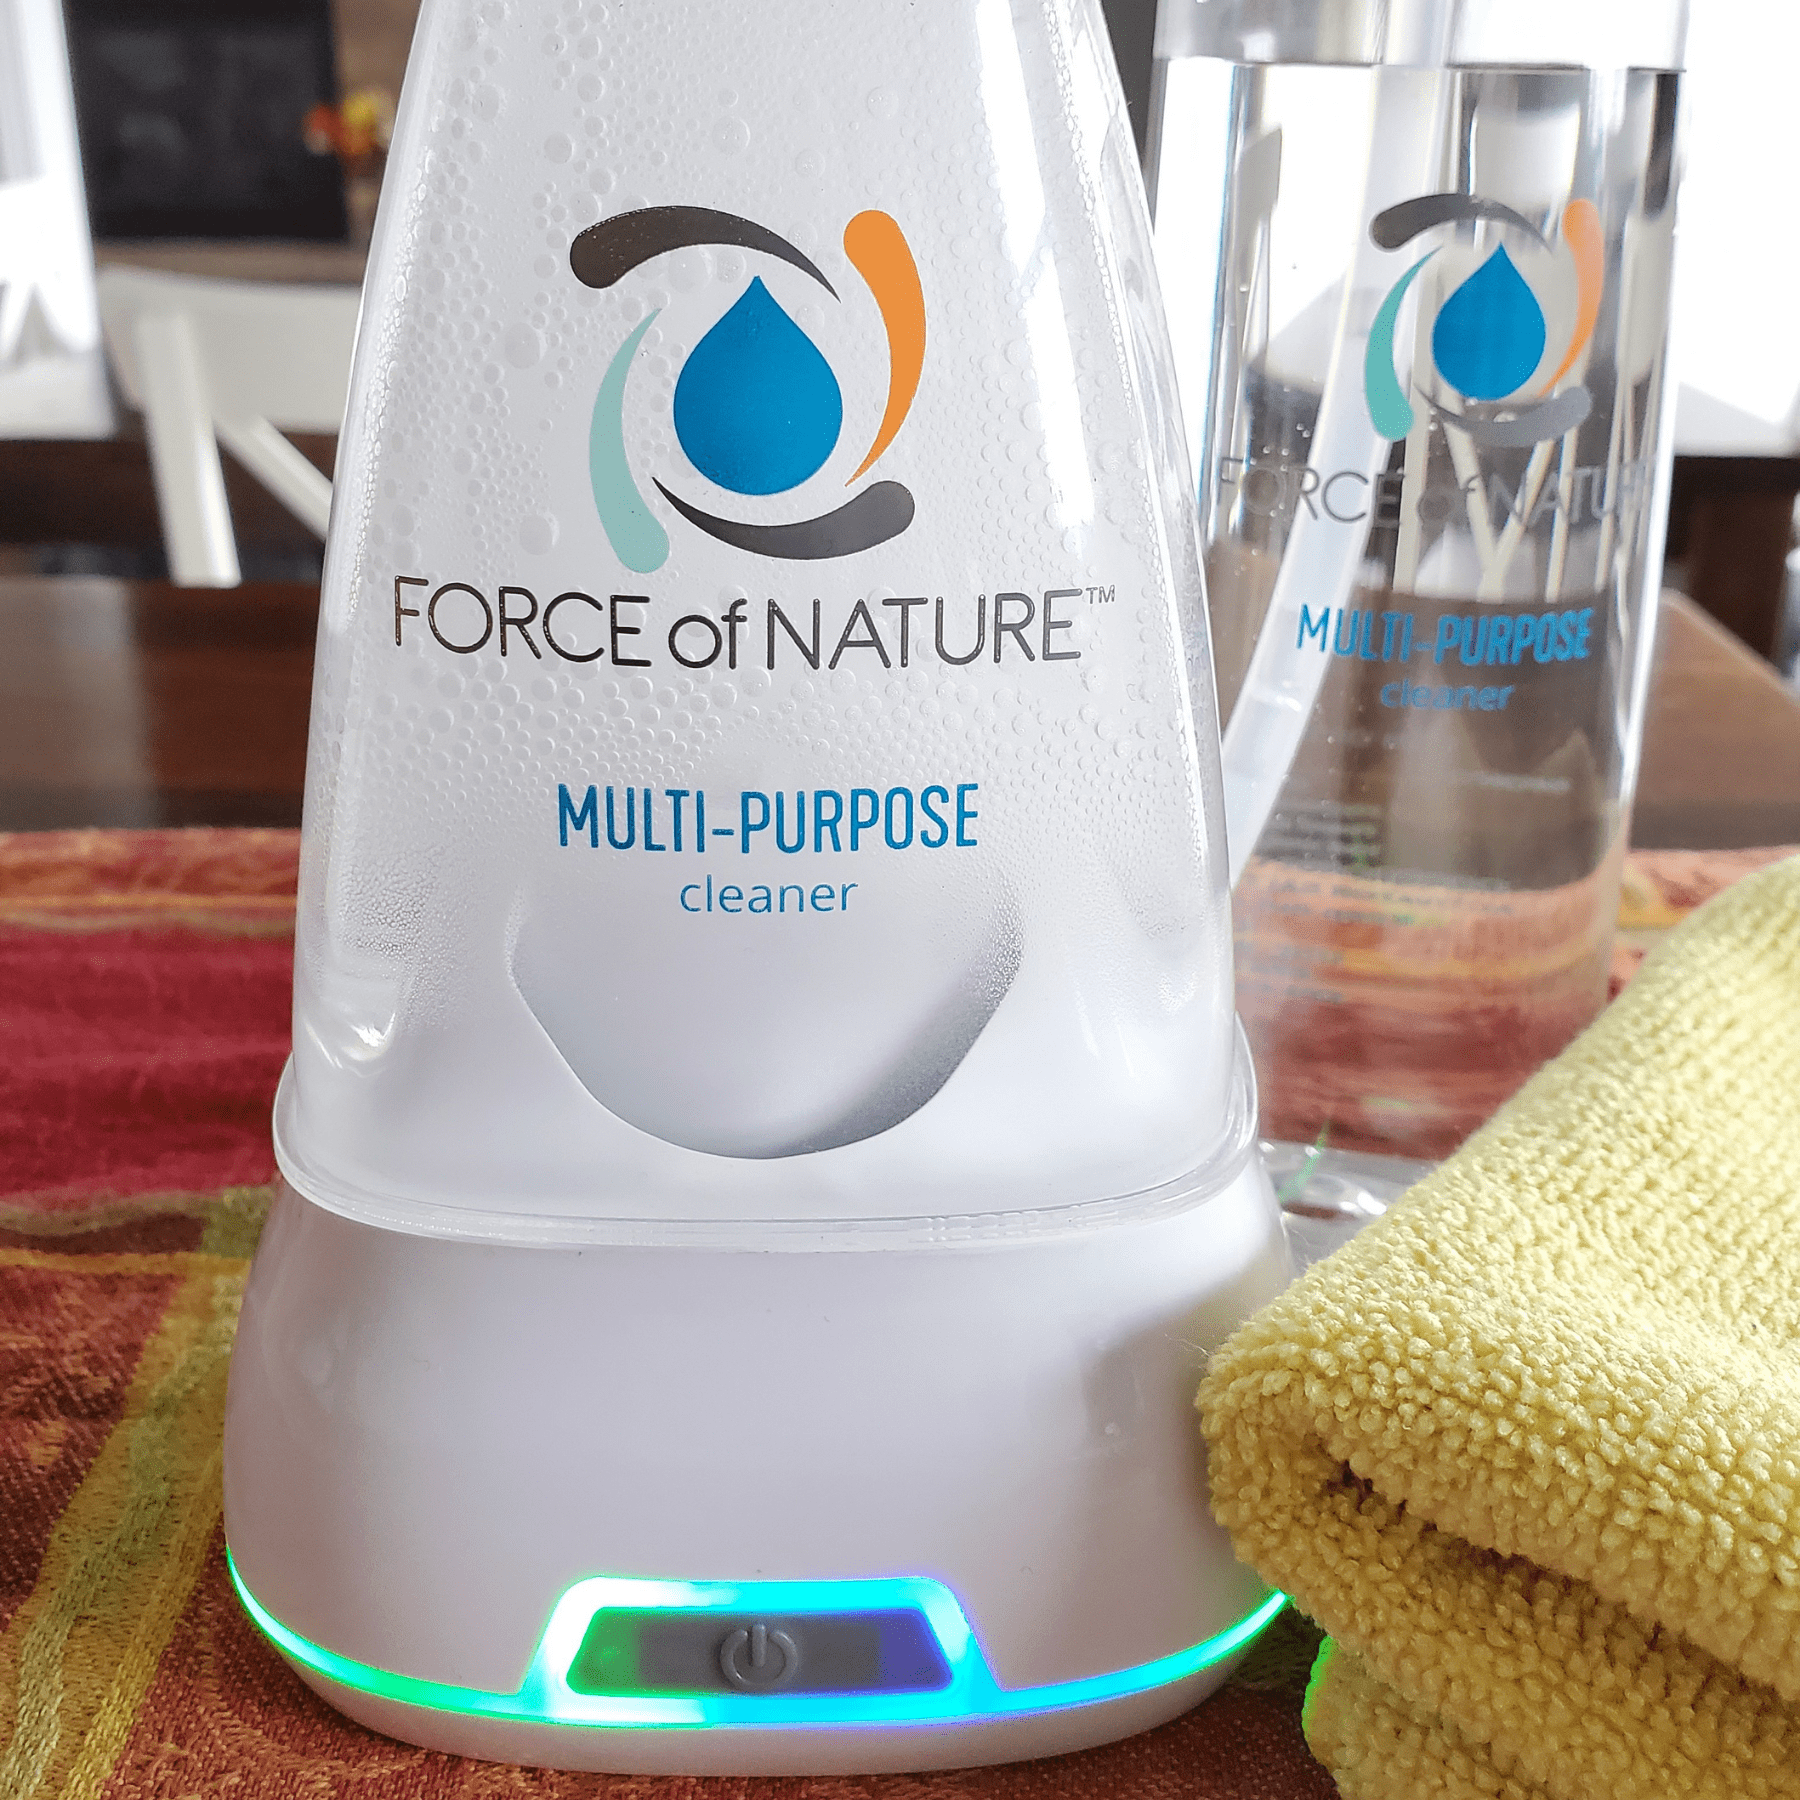 Force of Nature non-toxic cleaner bottle and electrolyzer base sitting on a kitchen countertop